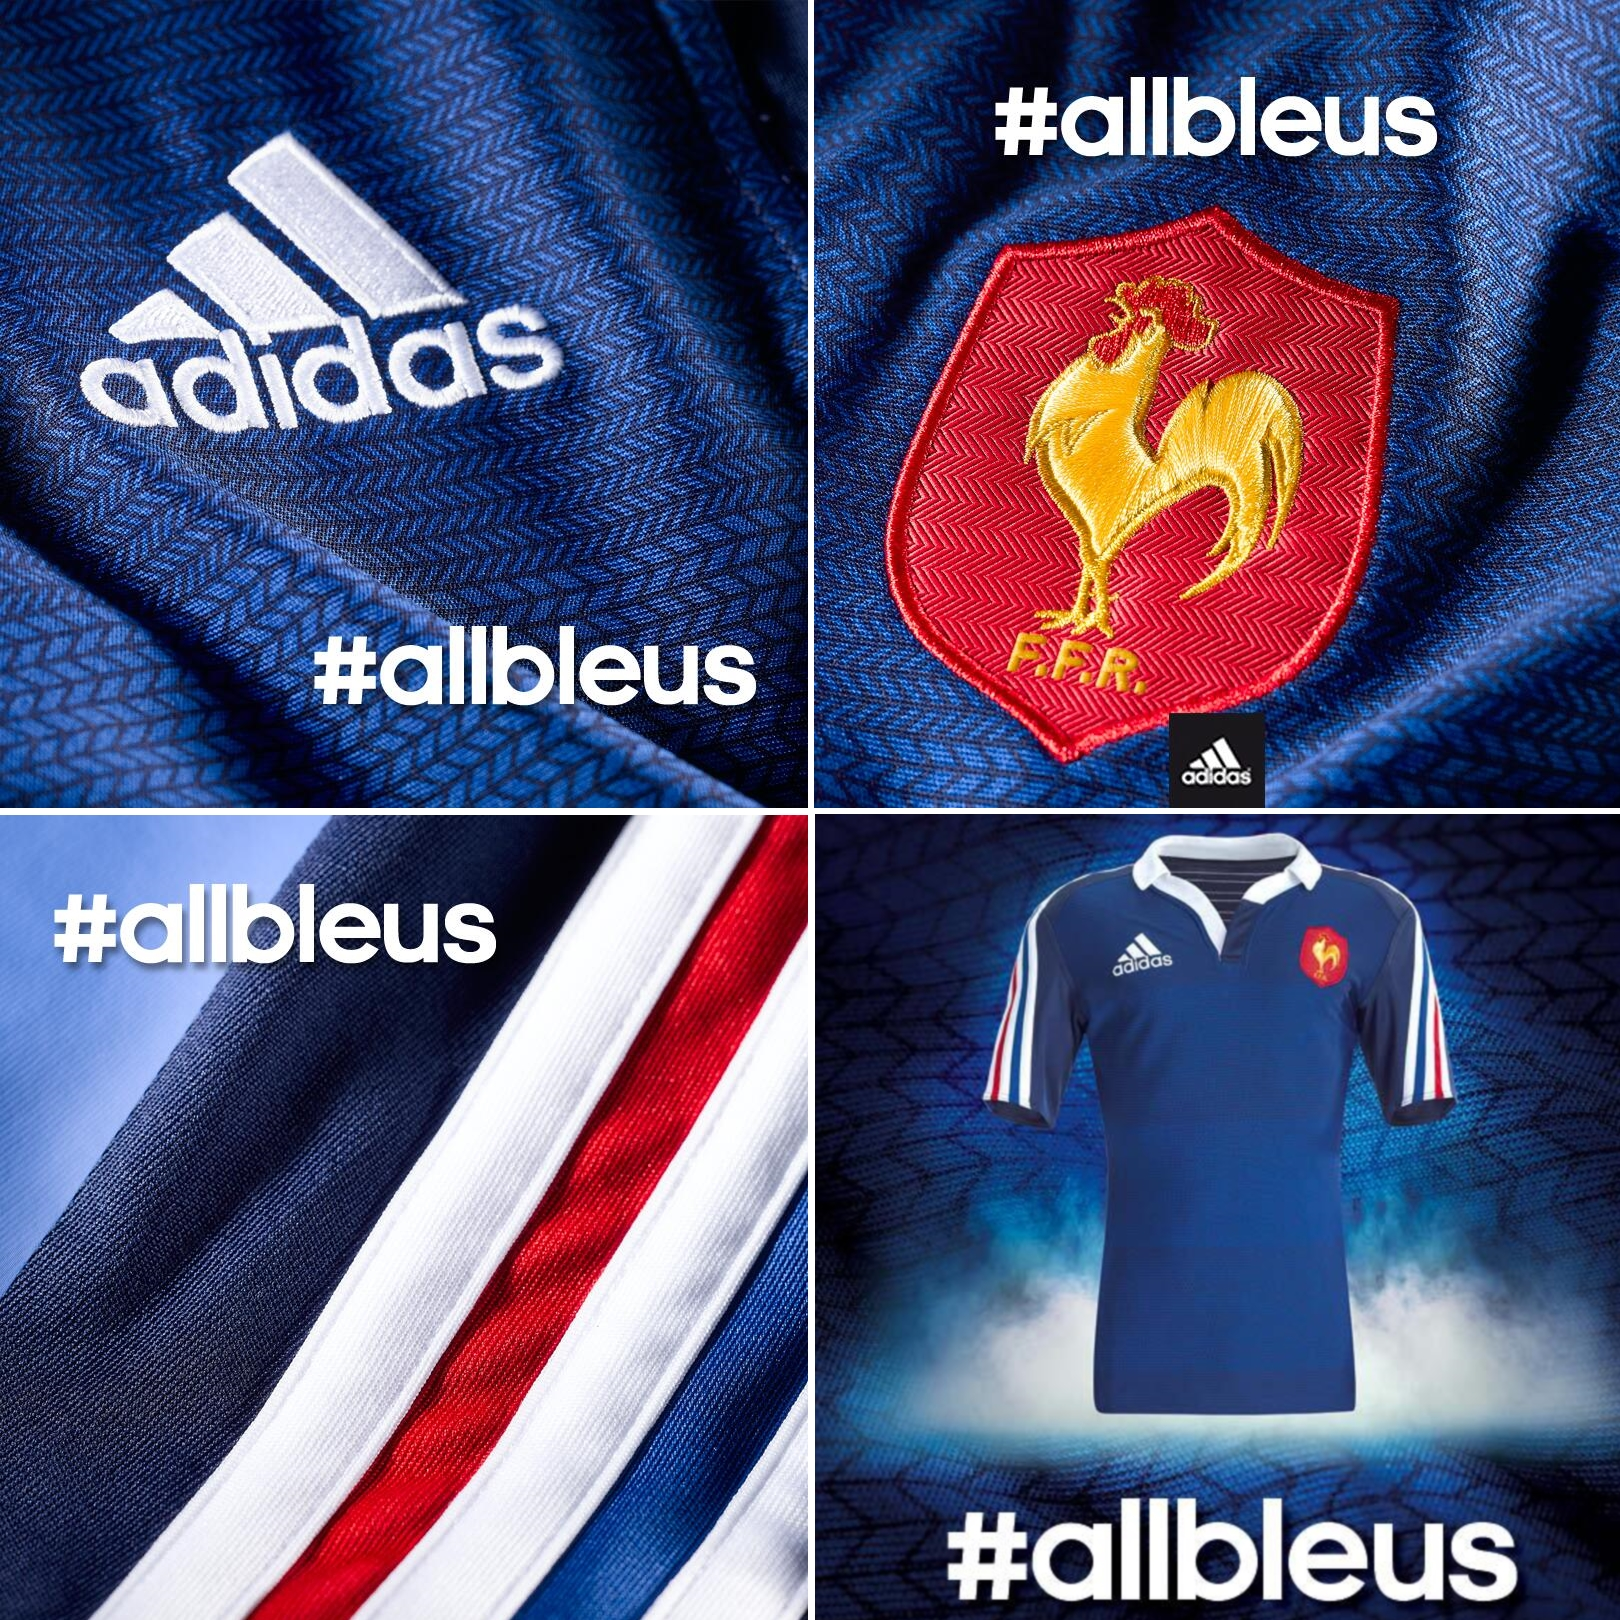 #allbleus-maillot-france-rugby-adidas-2013